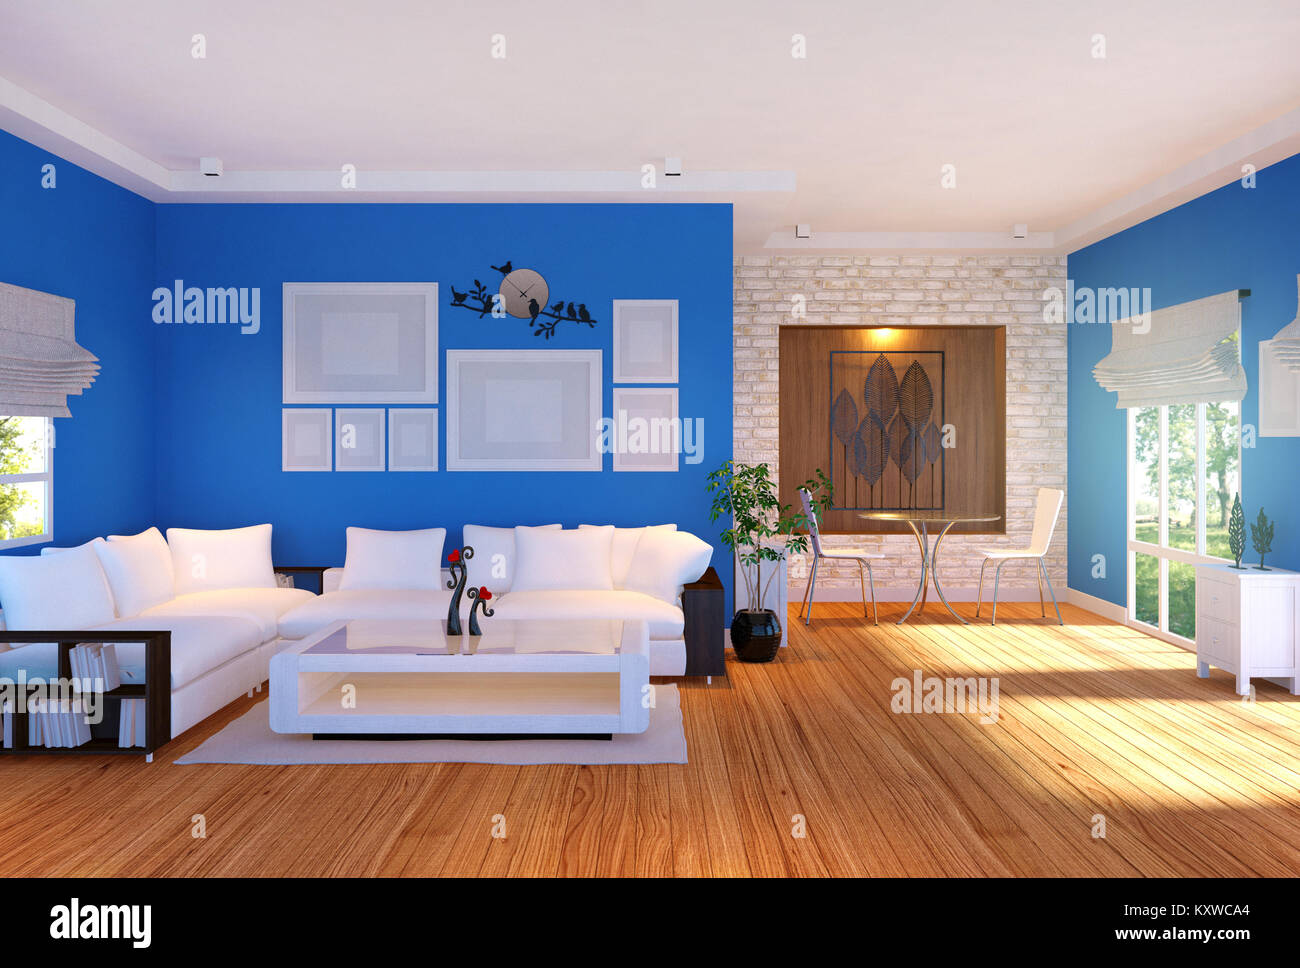 Modern Living Room Interior With Furniture And Empty Photo Frames On Wall 3D Rendering